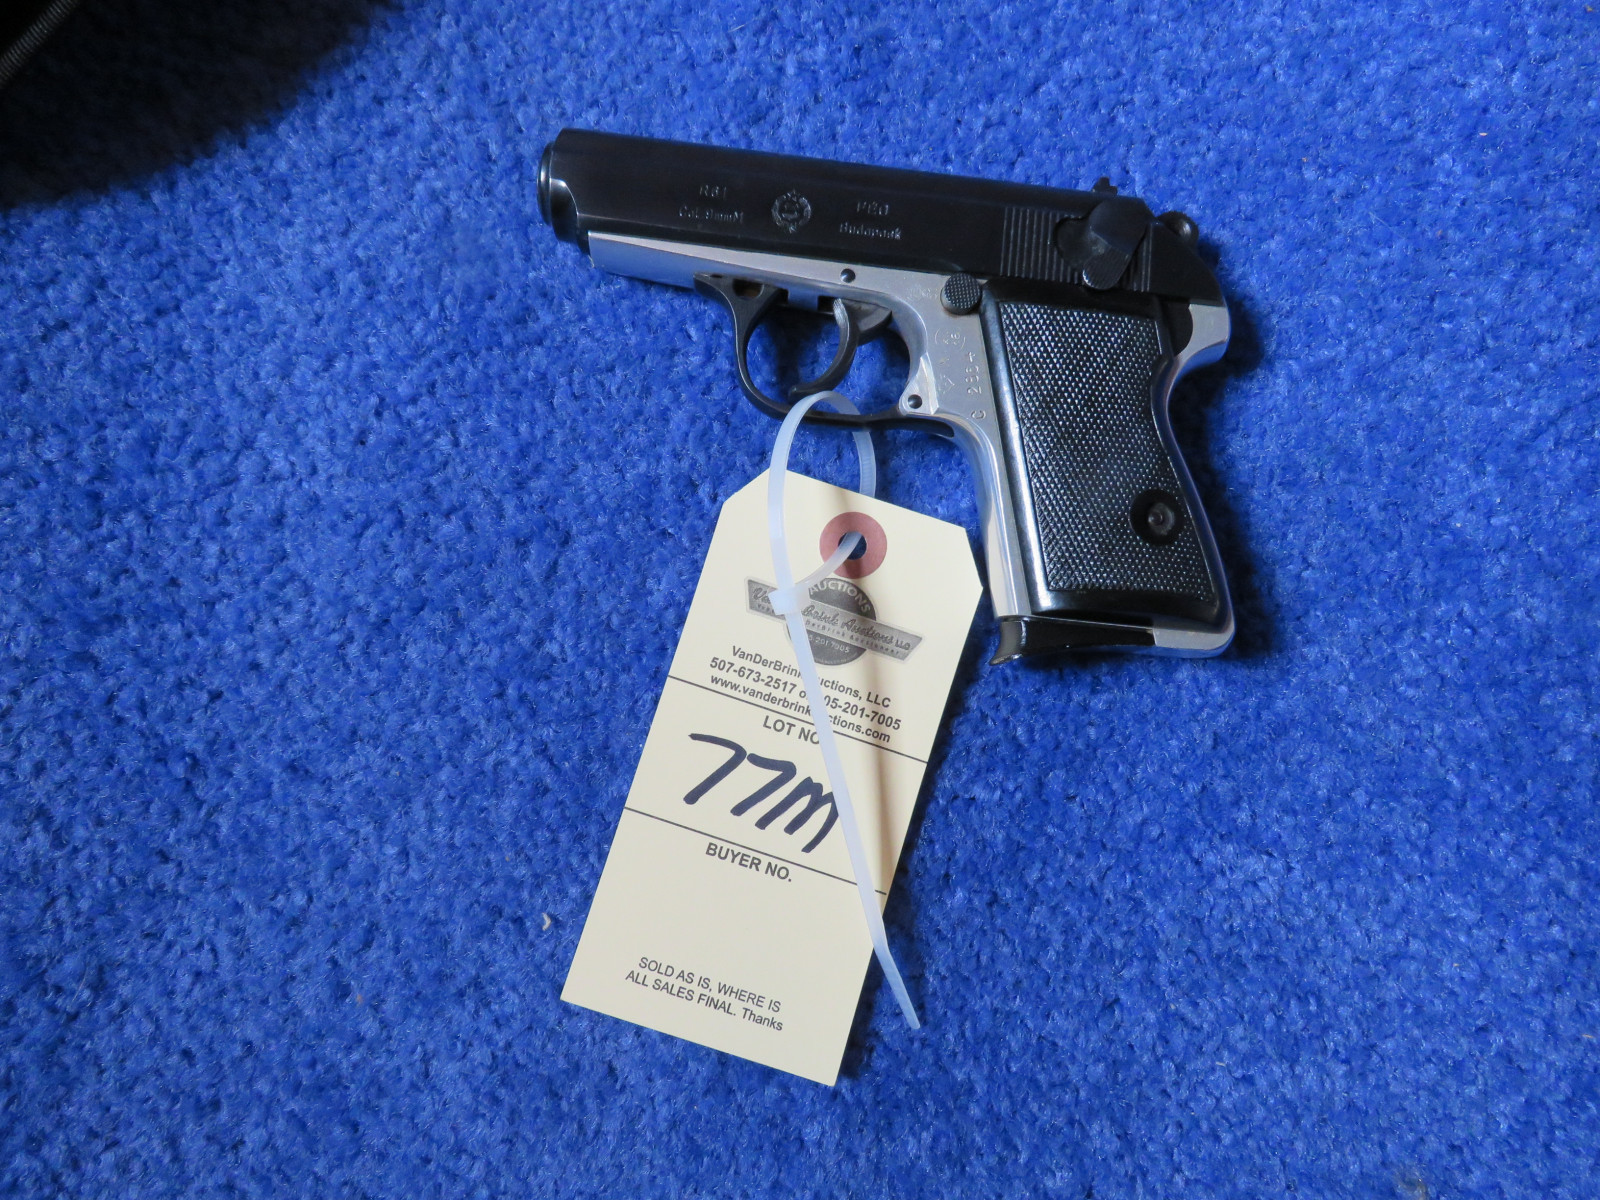 HFEG 9mm Handgun - Image 2